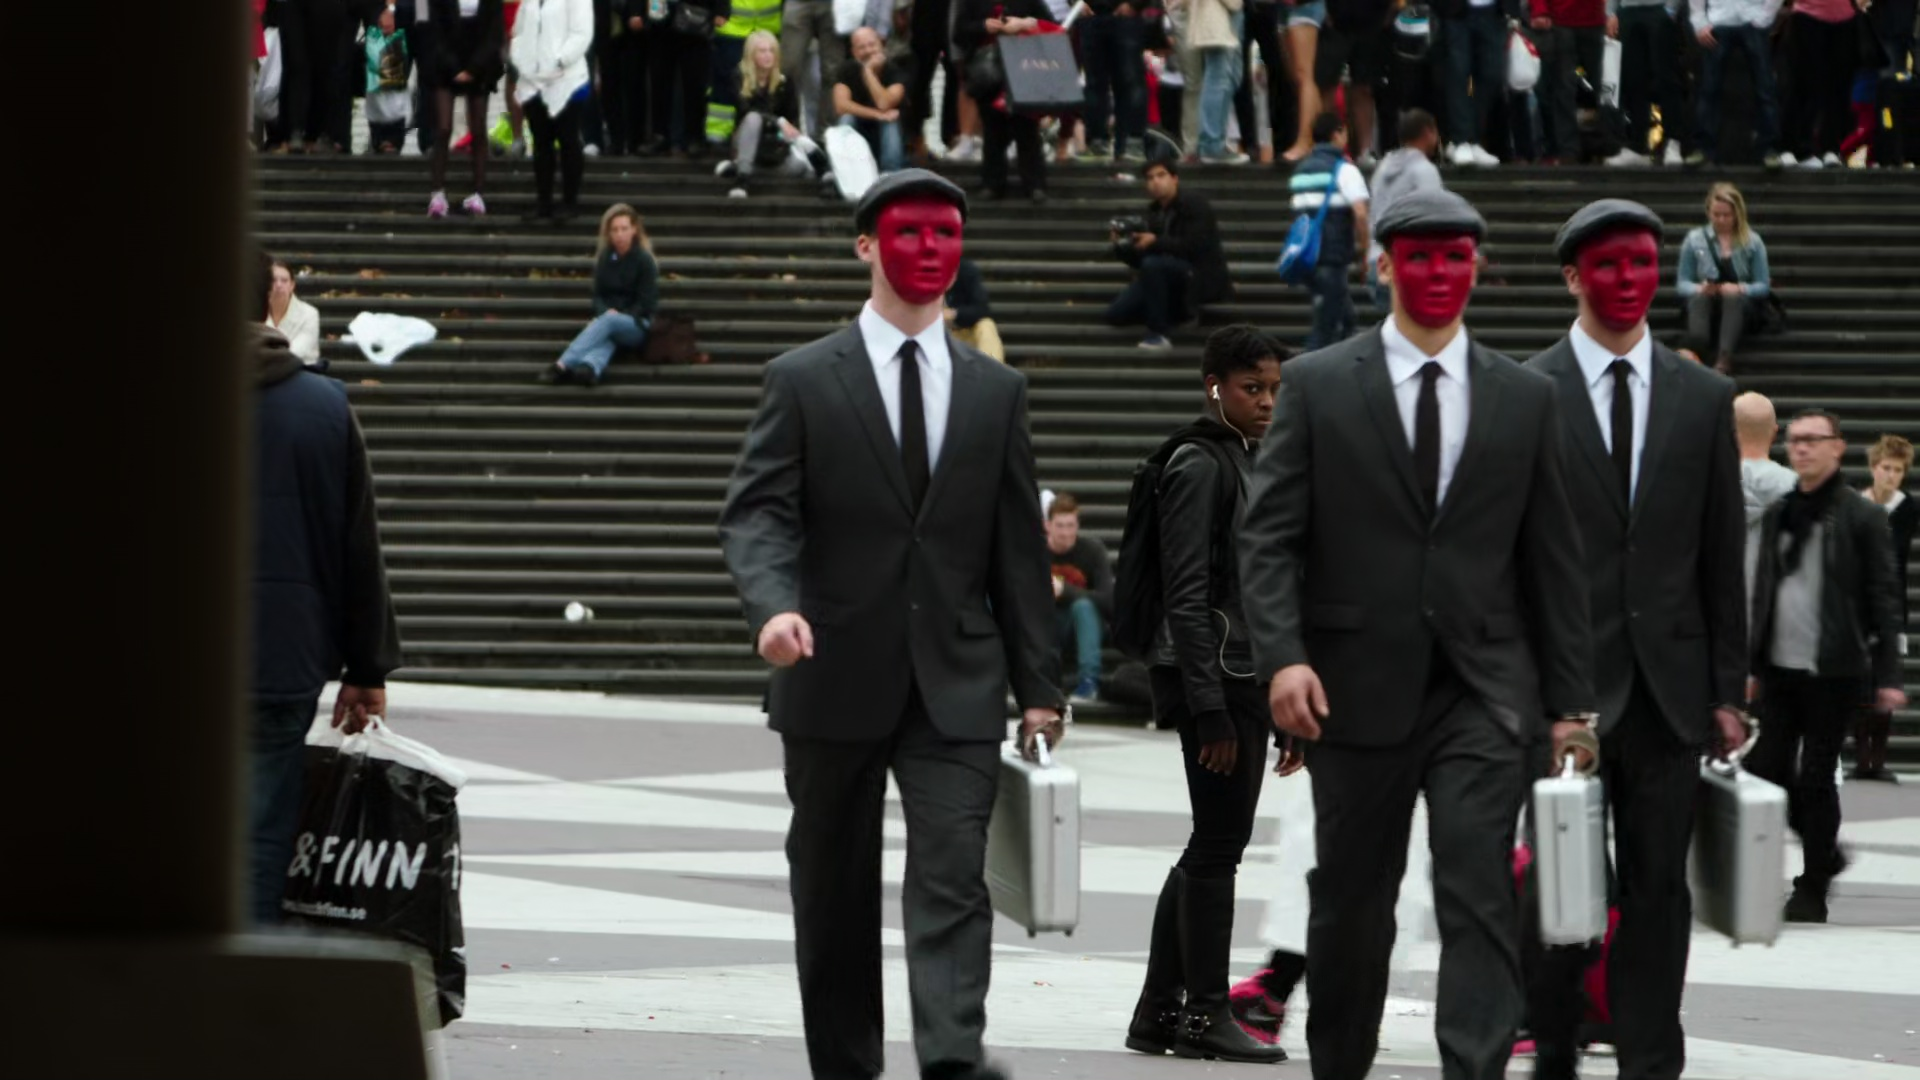 File:Red masks.jpg